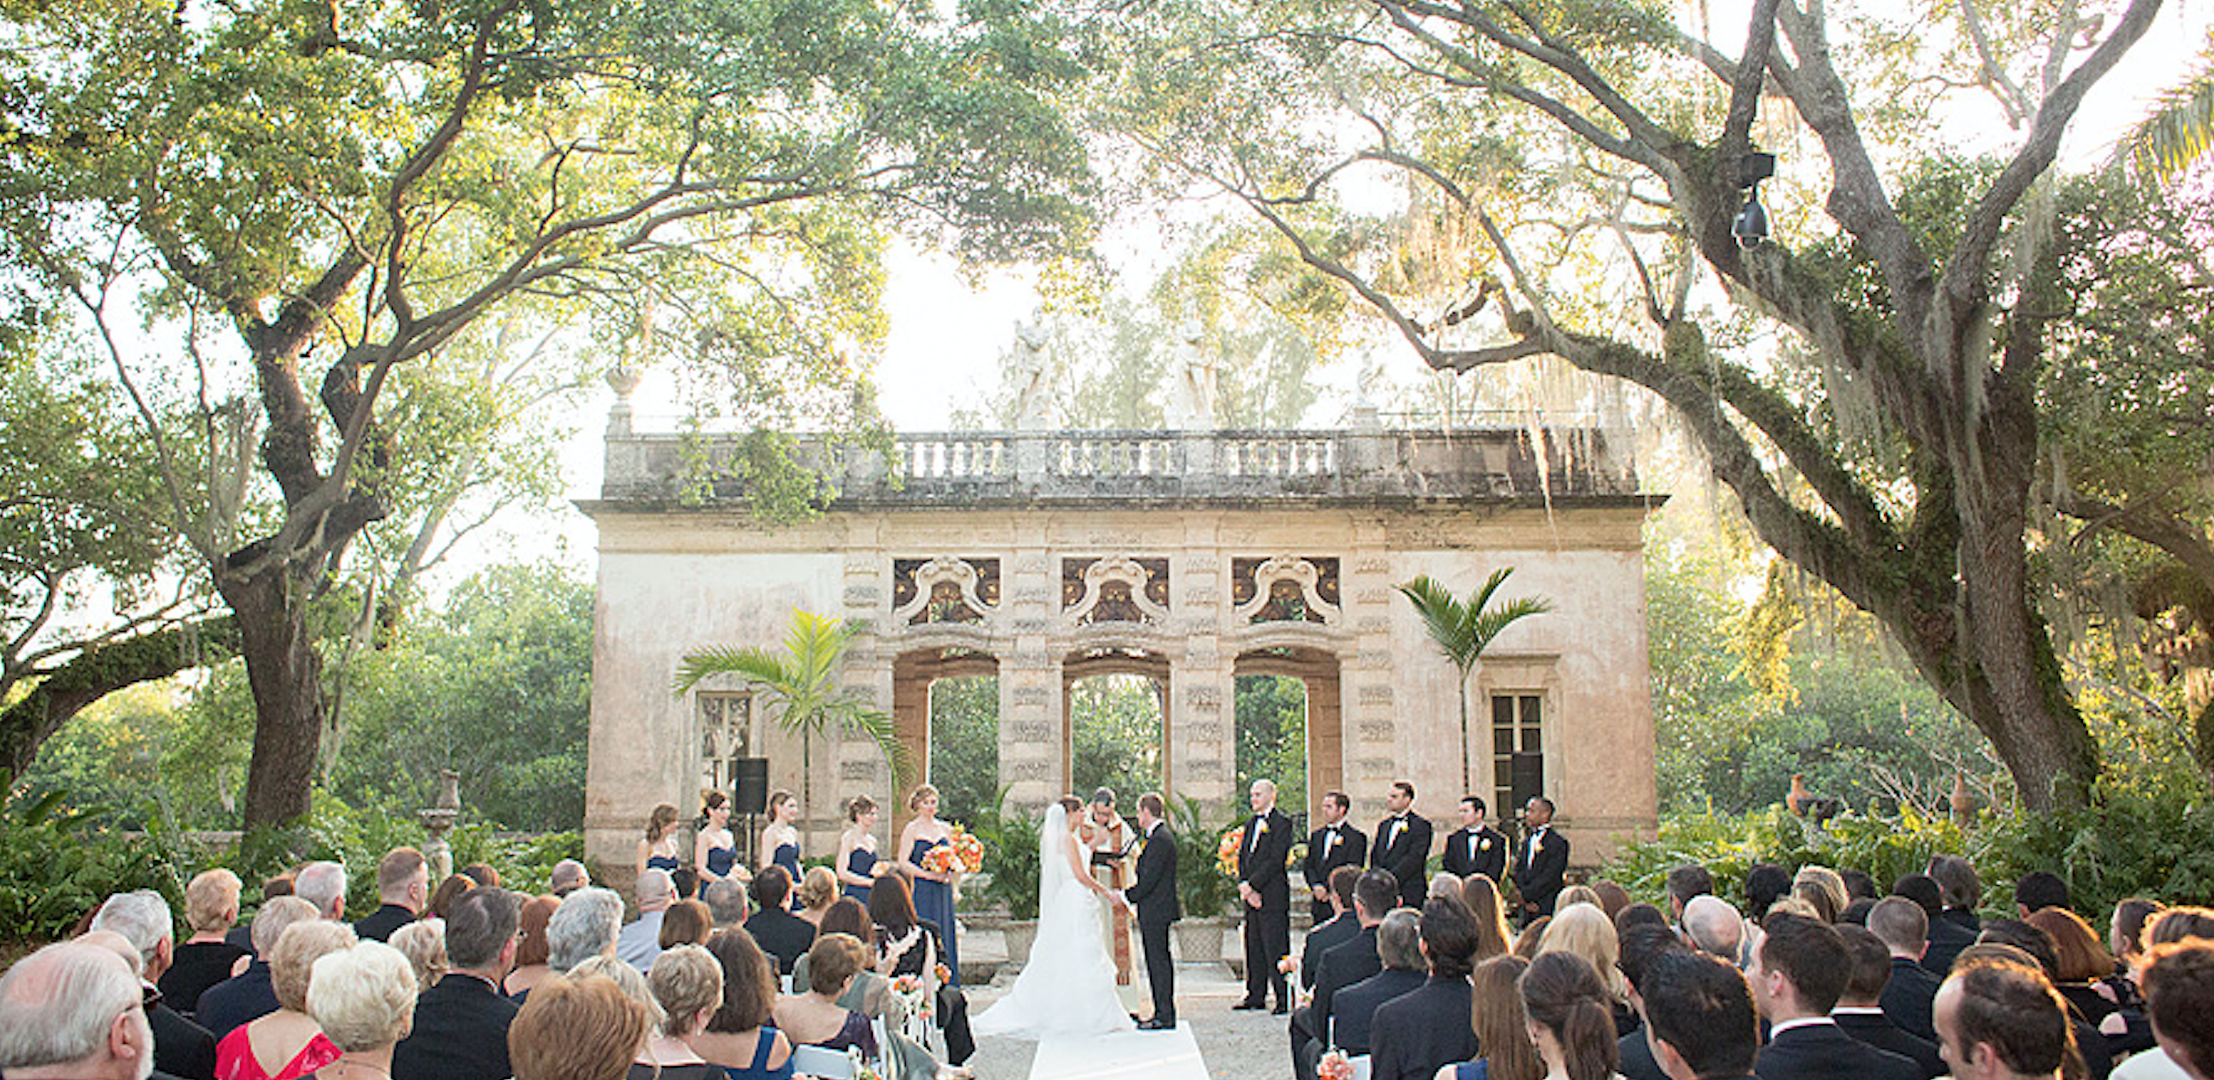 Miami top wedding venues miami wedding planner the creatives loft vizcaya museum gardens wedding venue junglespirit